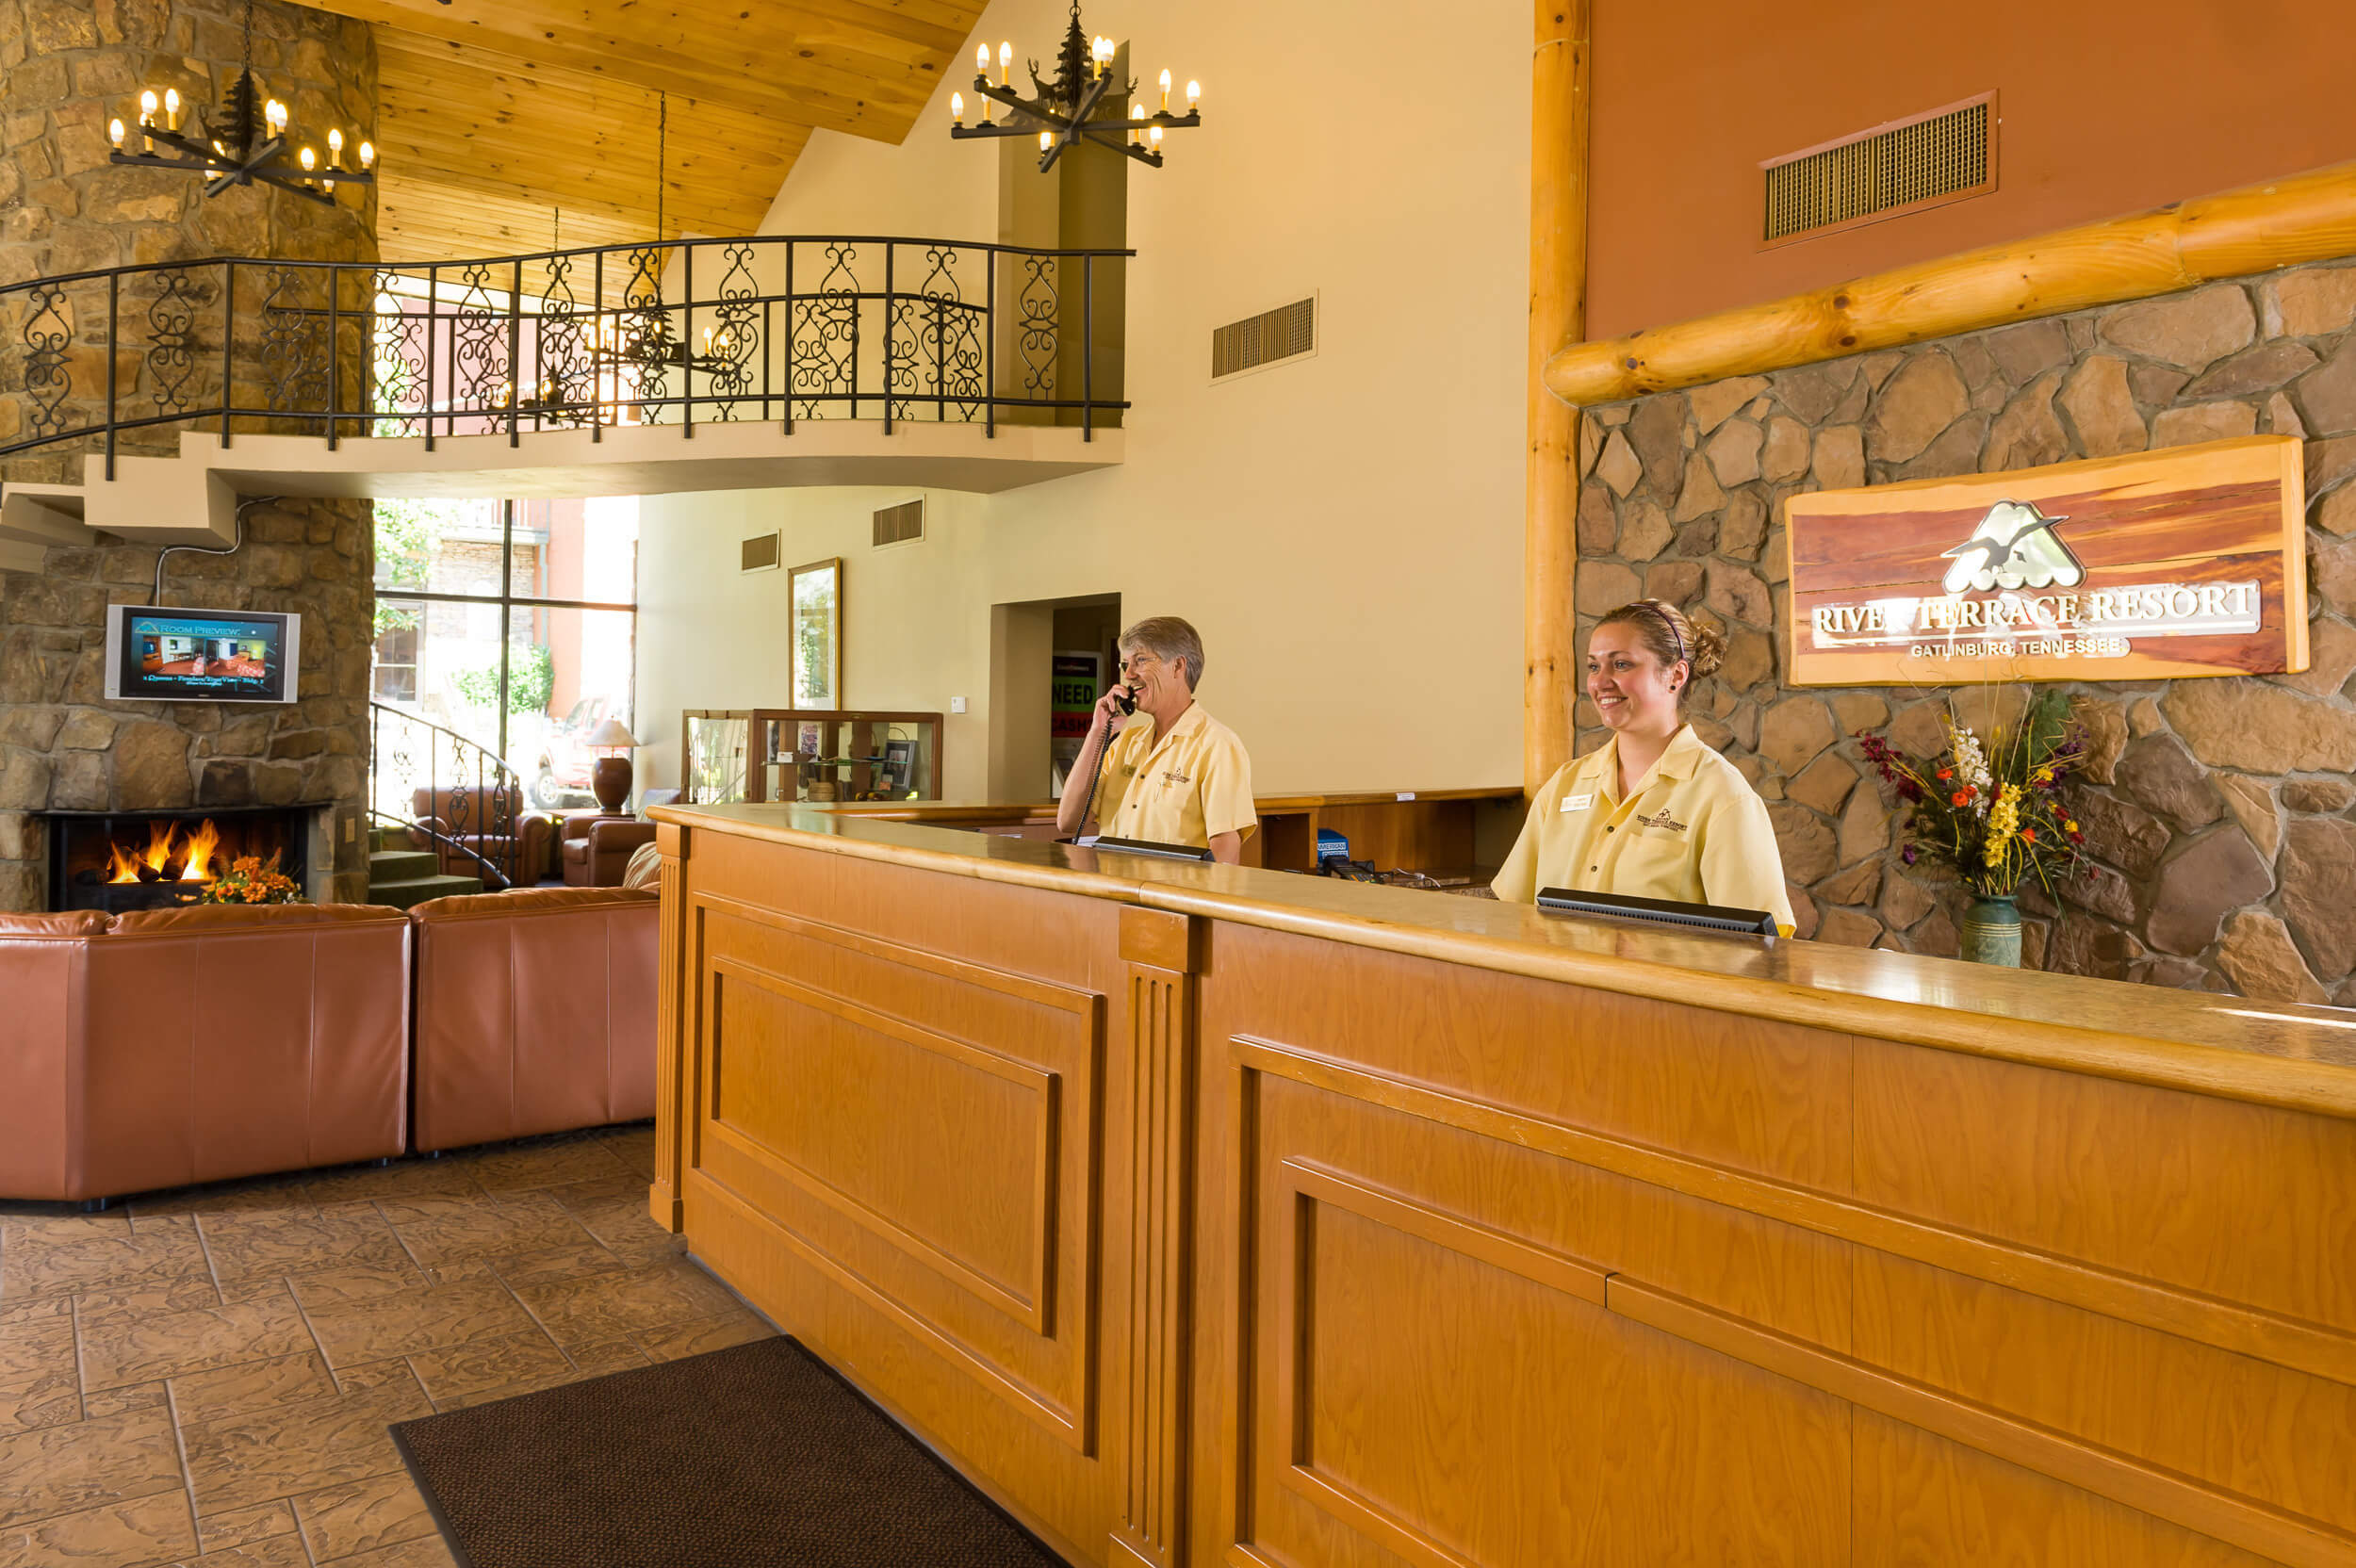 Lobby with front desk and fireplace | River Terrace Resort & Convention Center